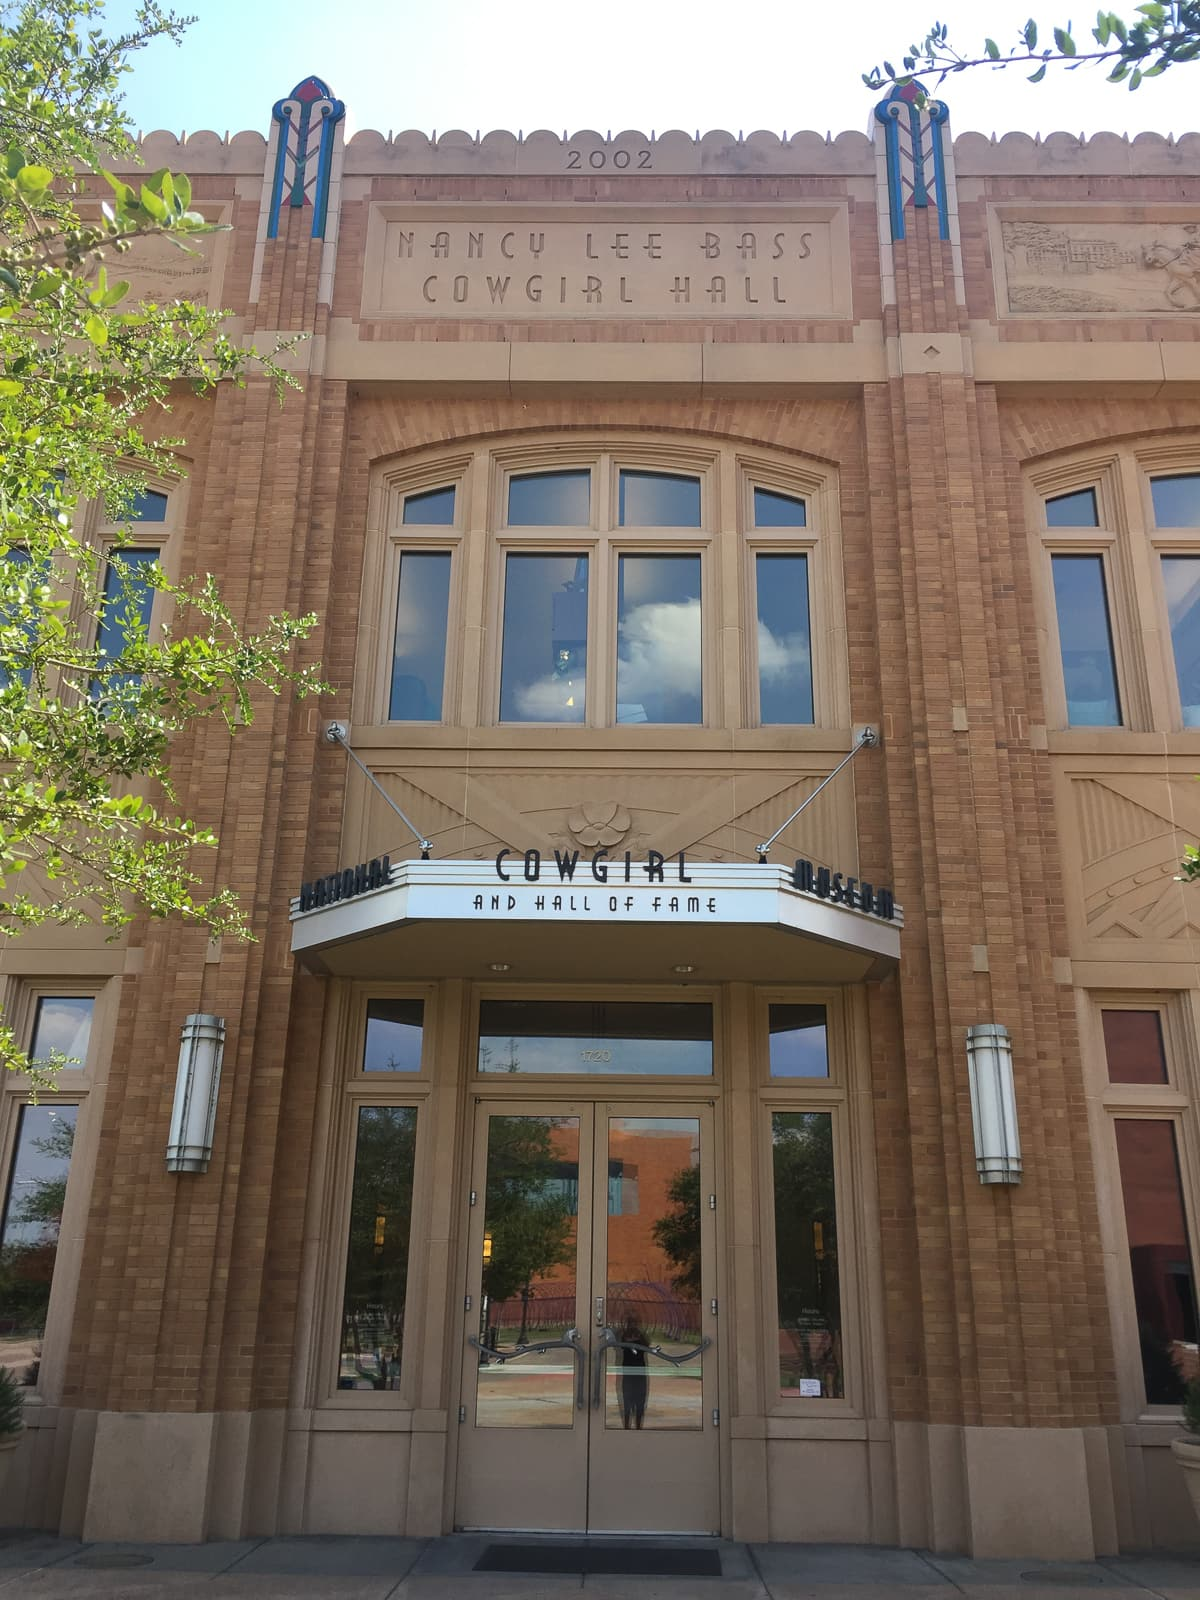 National Cowgirl Museum and Hall of Fame